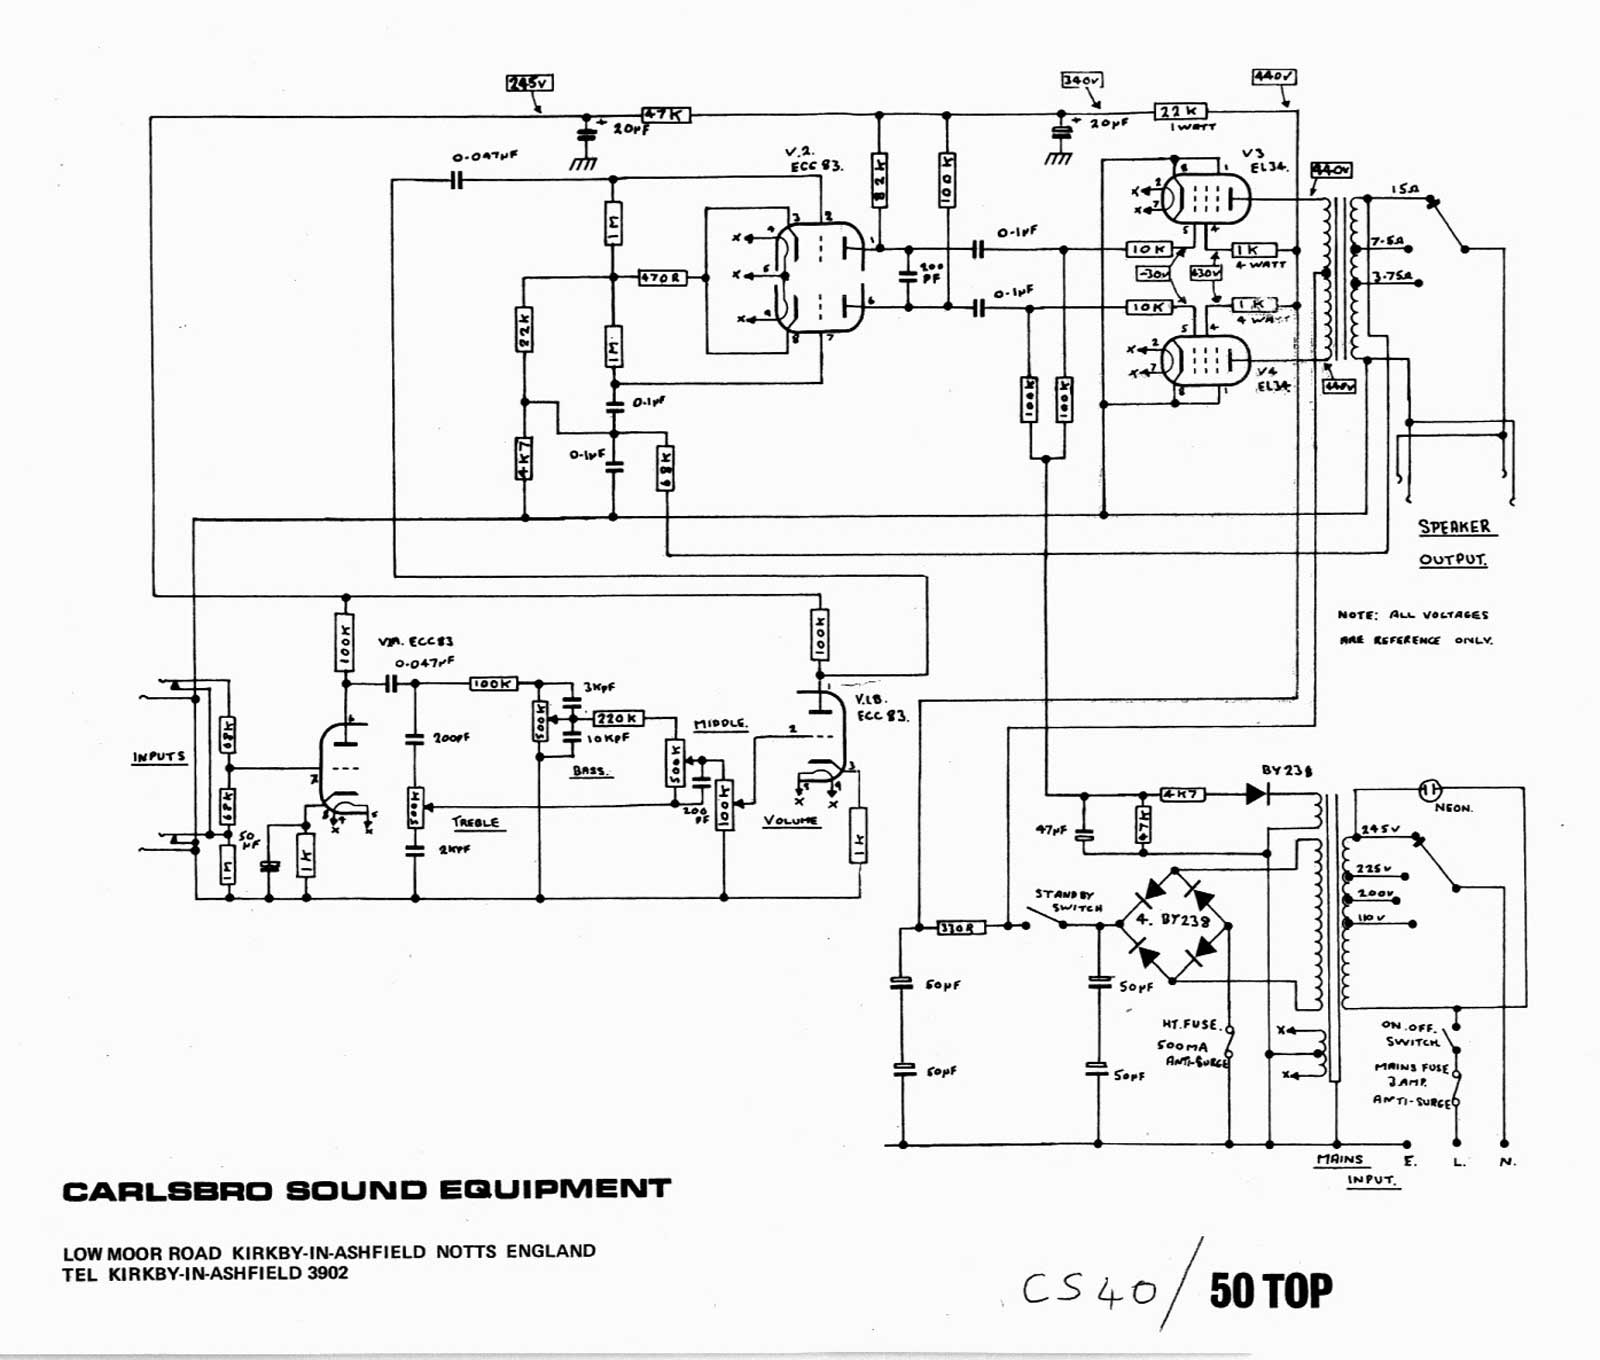 carlsbro cs 40  50 top amp schematic